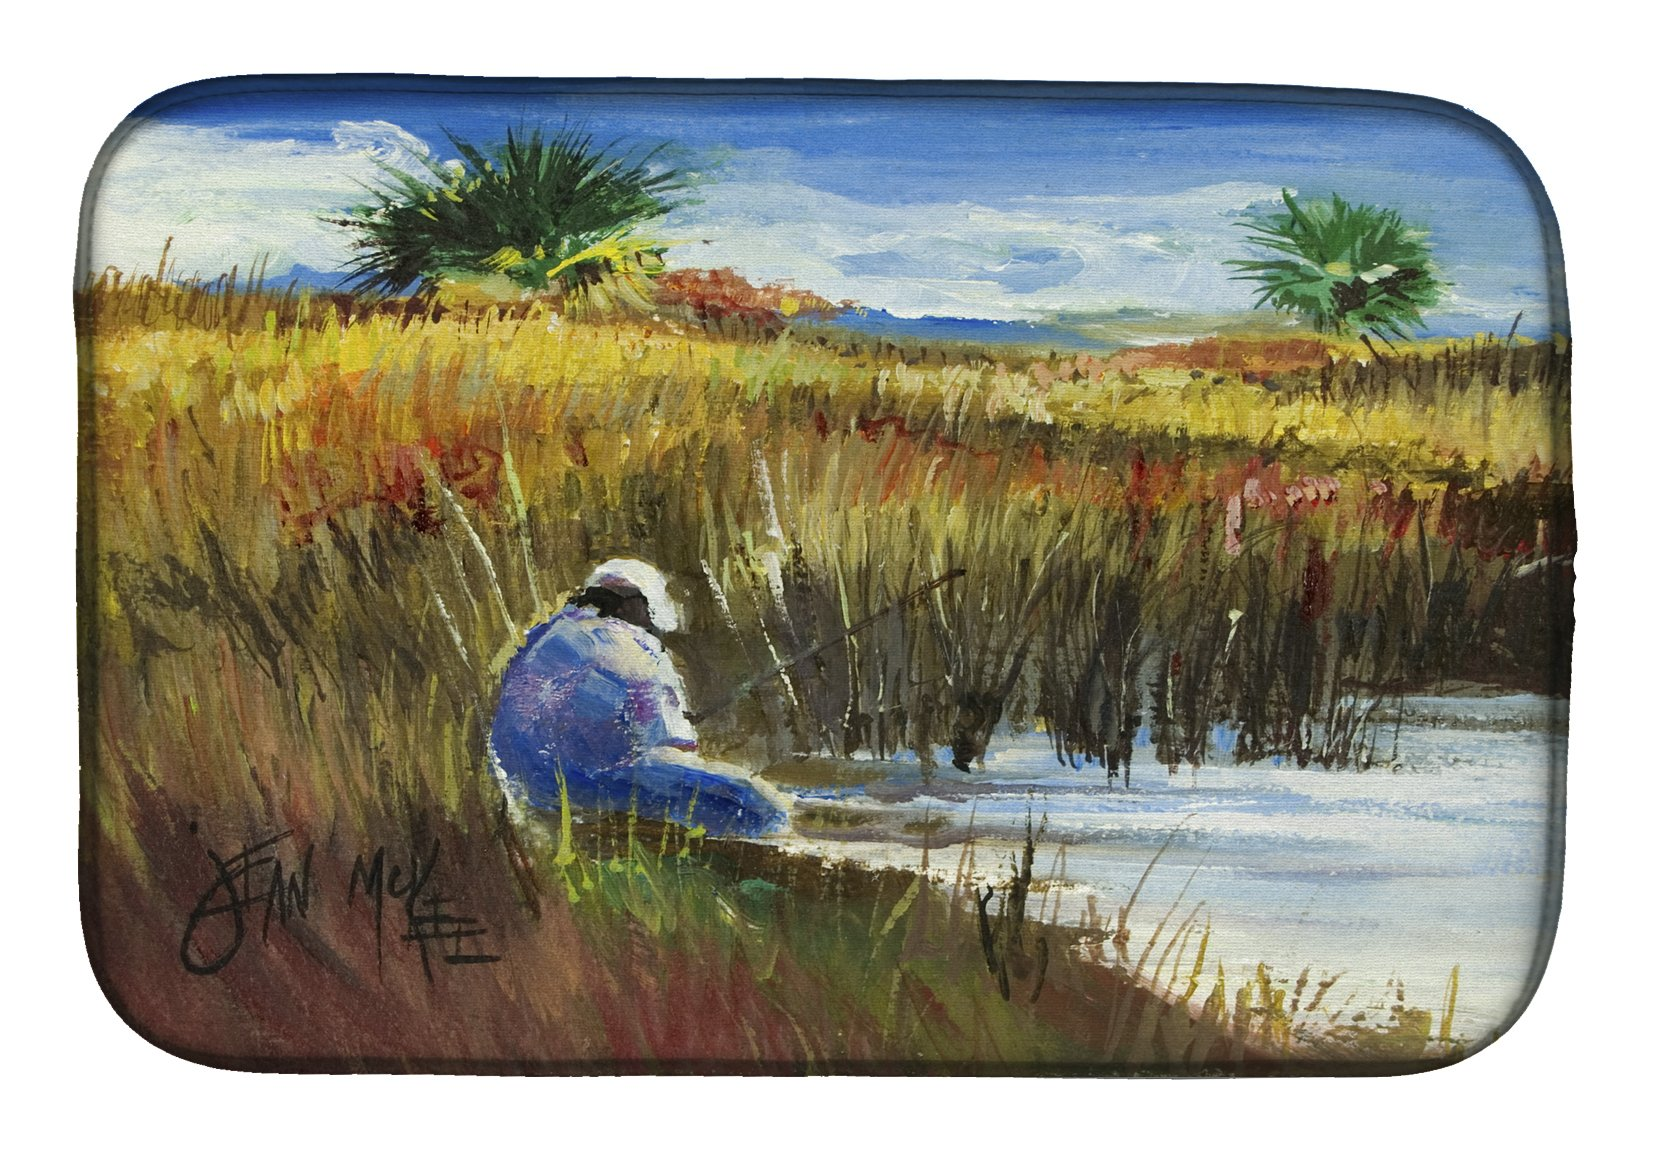 Fisherman on the Bank Dish Drying Mat JMK1125DDM by Caroline's Treasures